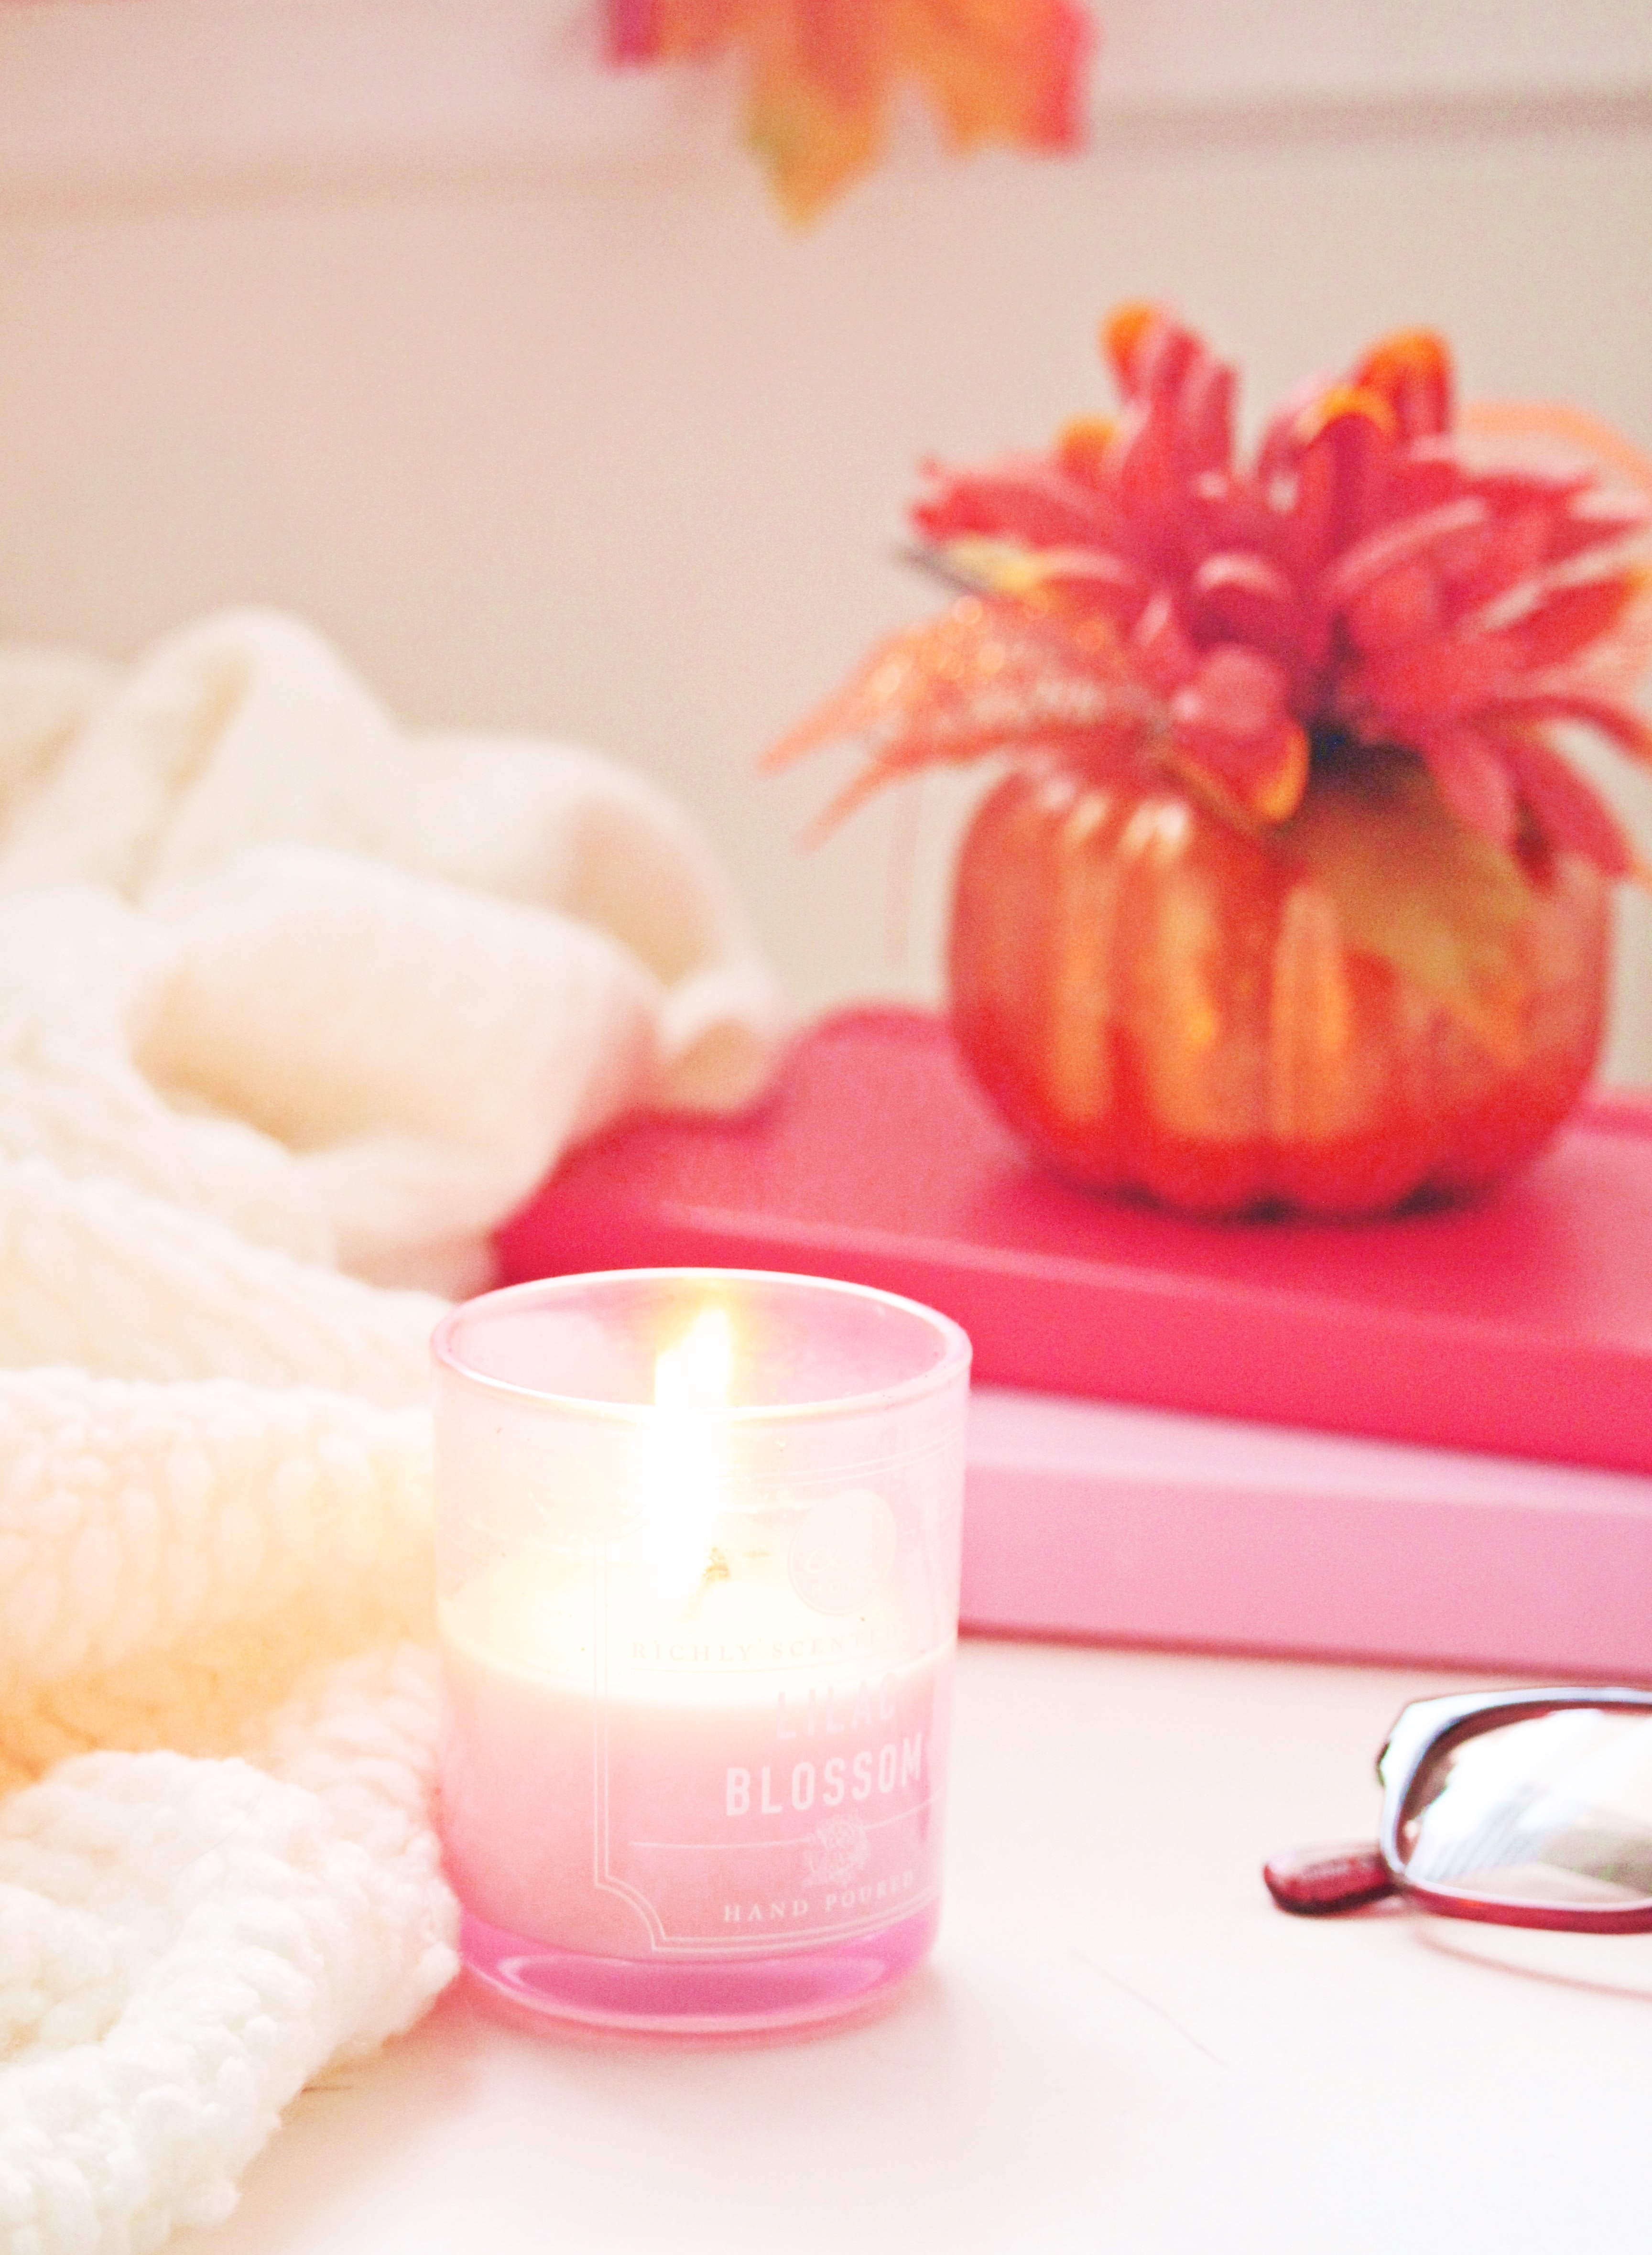 Two pinks book piled up with a faux pink plant. There is a pink candle lit next to a white blanket